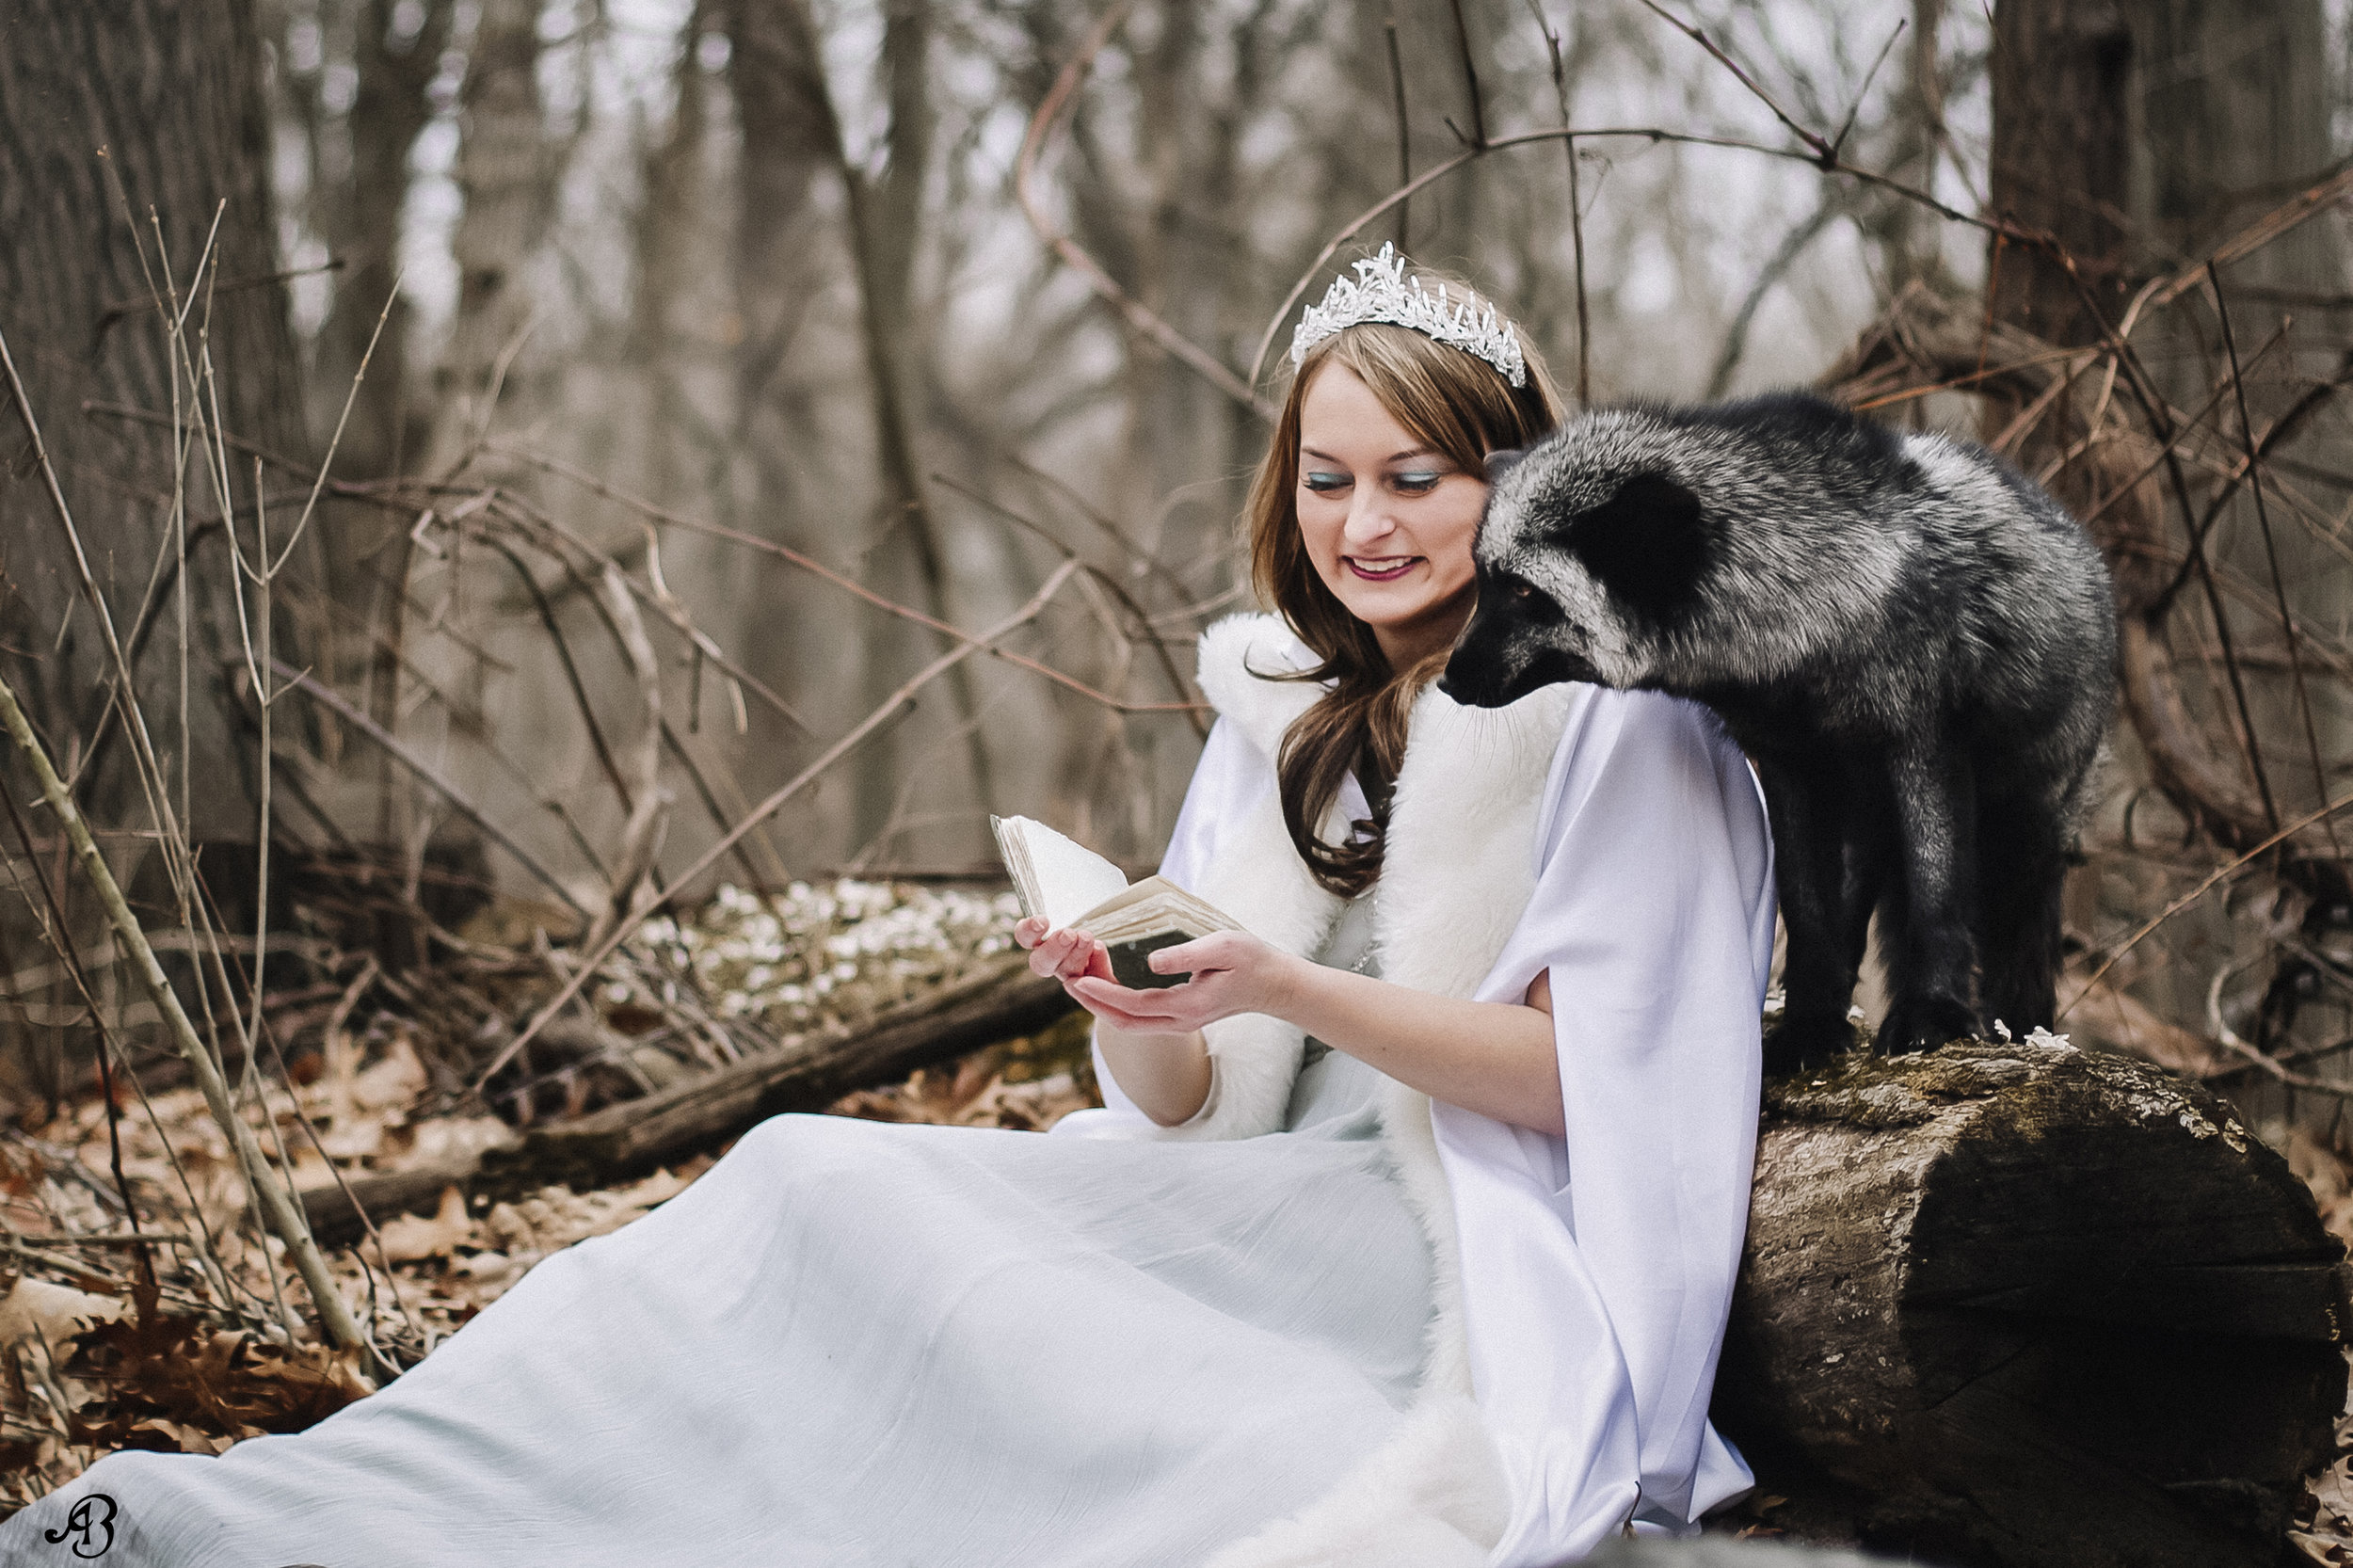 Reading with Foxes | Photoshoot with Foxes | Animal Encounters | Alyssia Booth's Candid & Studio | Michigan Photographer | Fantasy Photoshoots | www.abcandidstudio.com